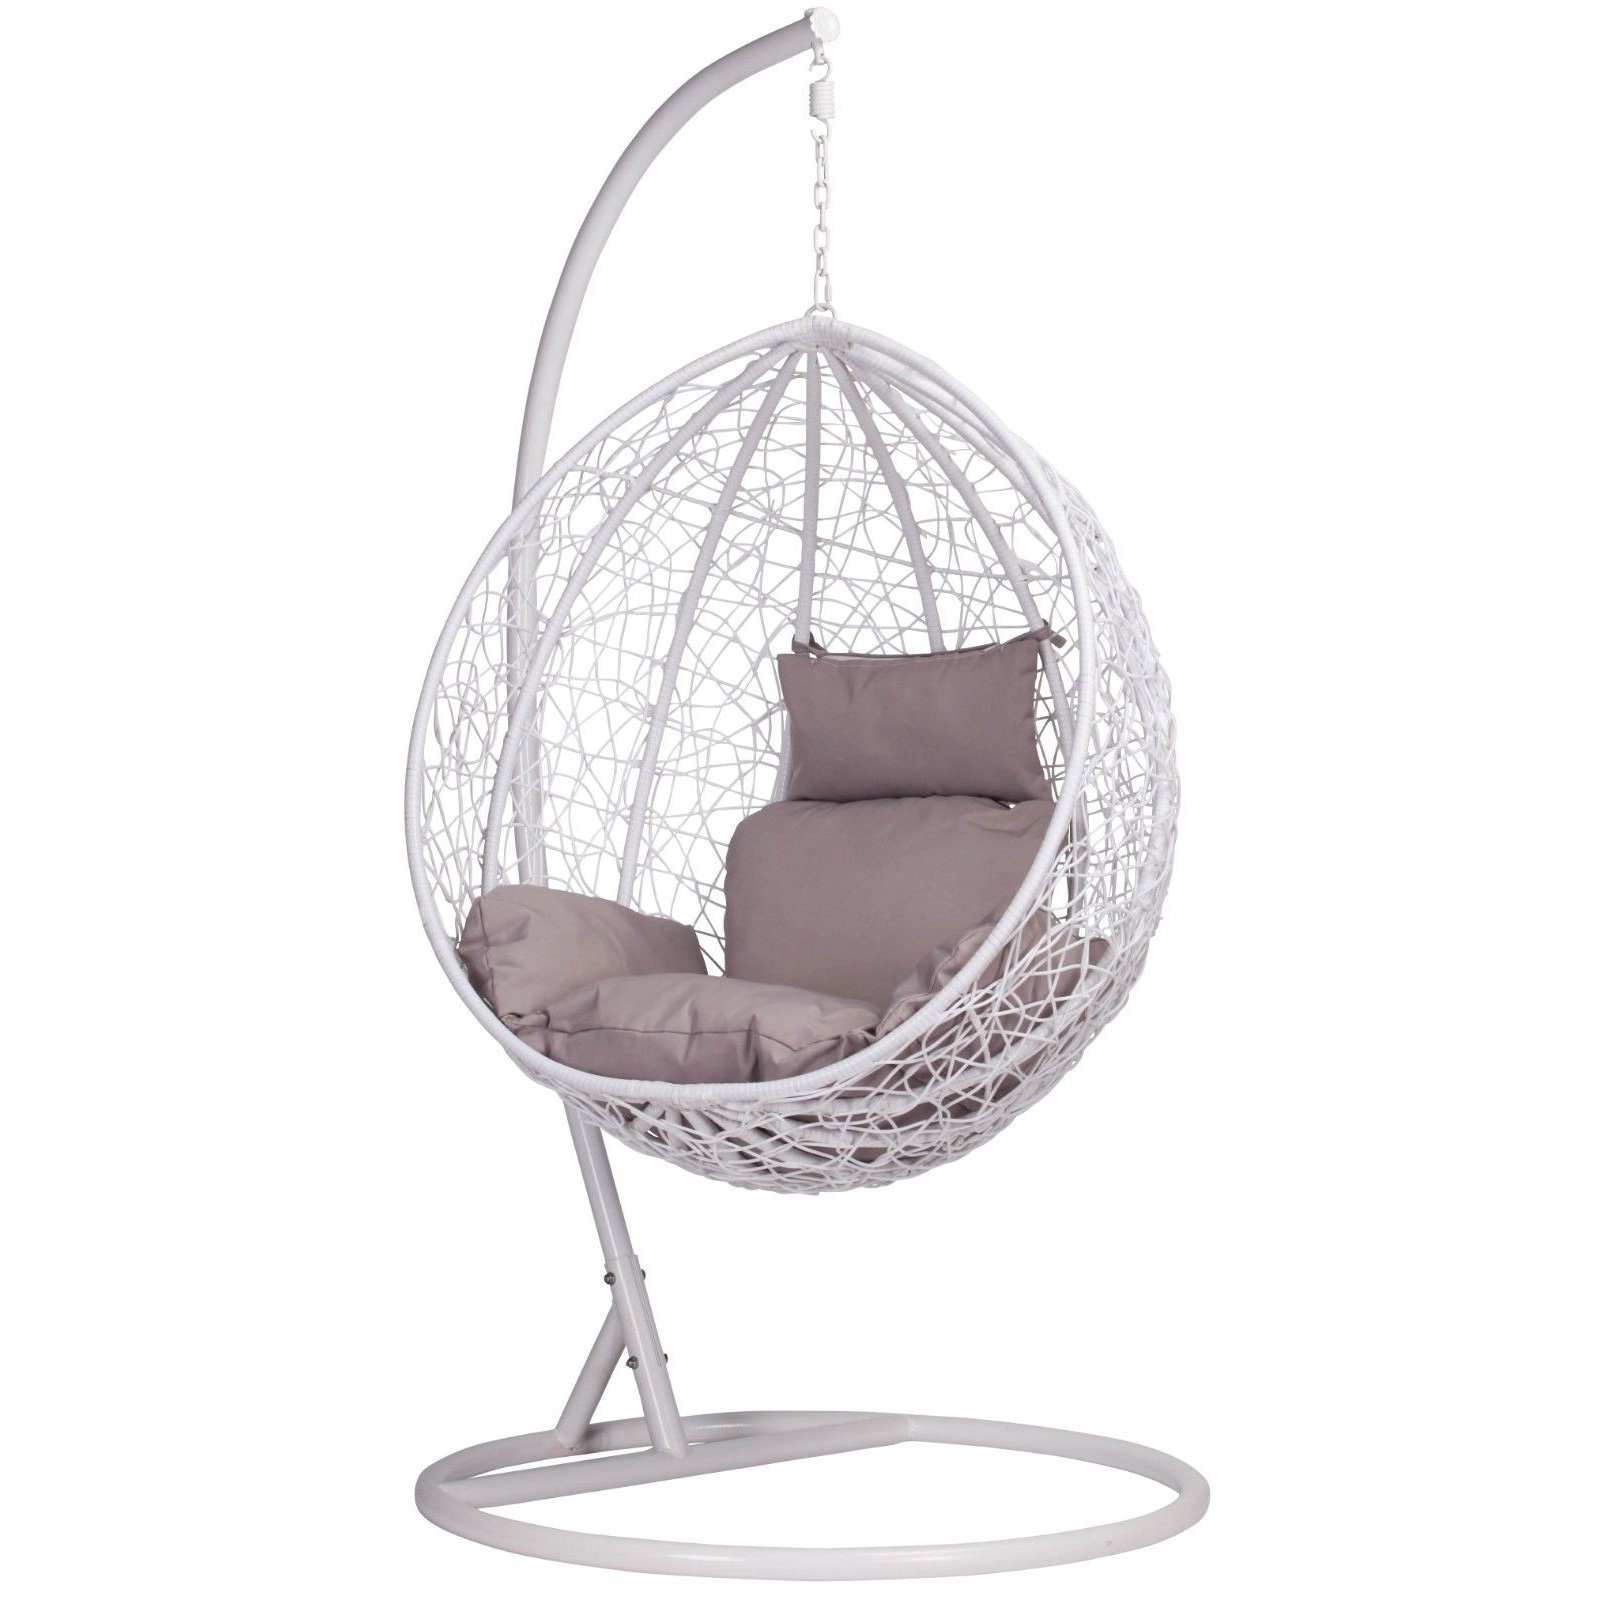 The Egg Chair.White Rattan Swing Weave Patio Garden Hanging Egg Chair